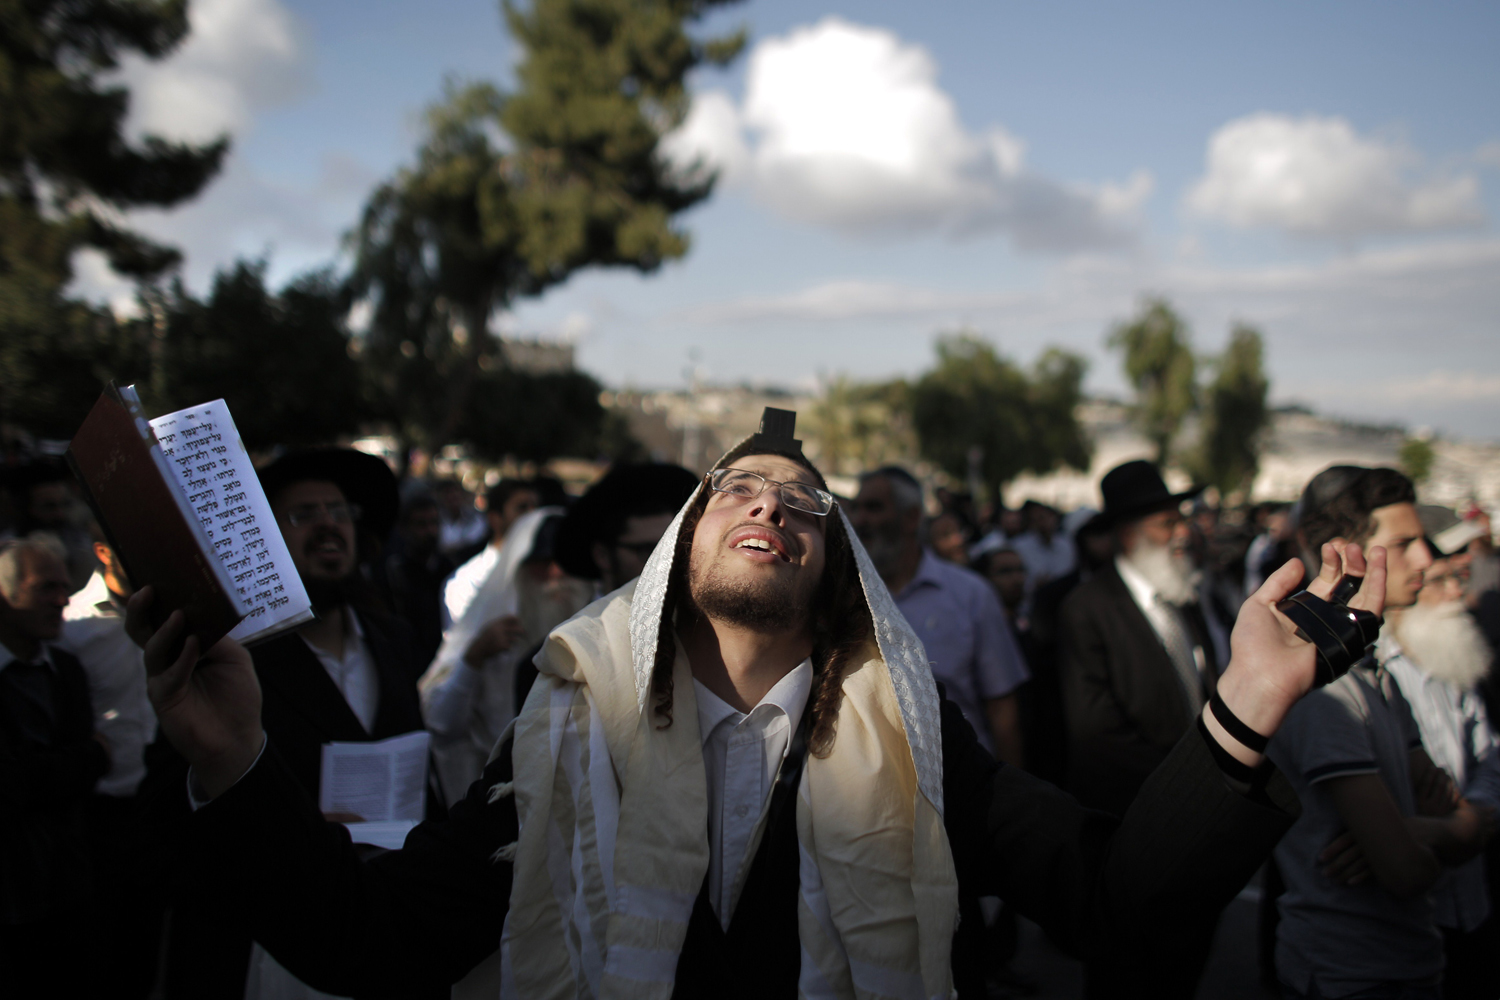 May 12, 2014. Ultra-Orthodox Jewish men pray during a protest against Pope Francis' upcoming visit in the Old City of Jerusalem, near King David's tomb.